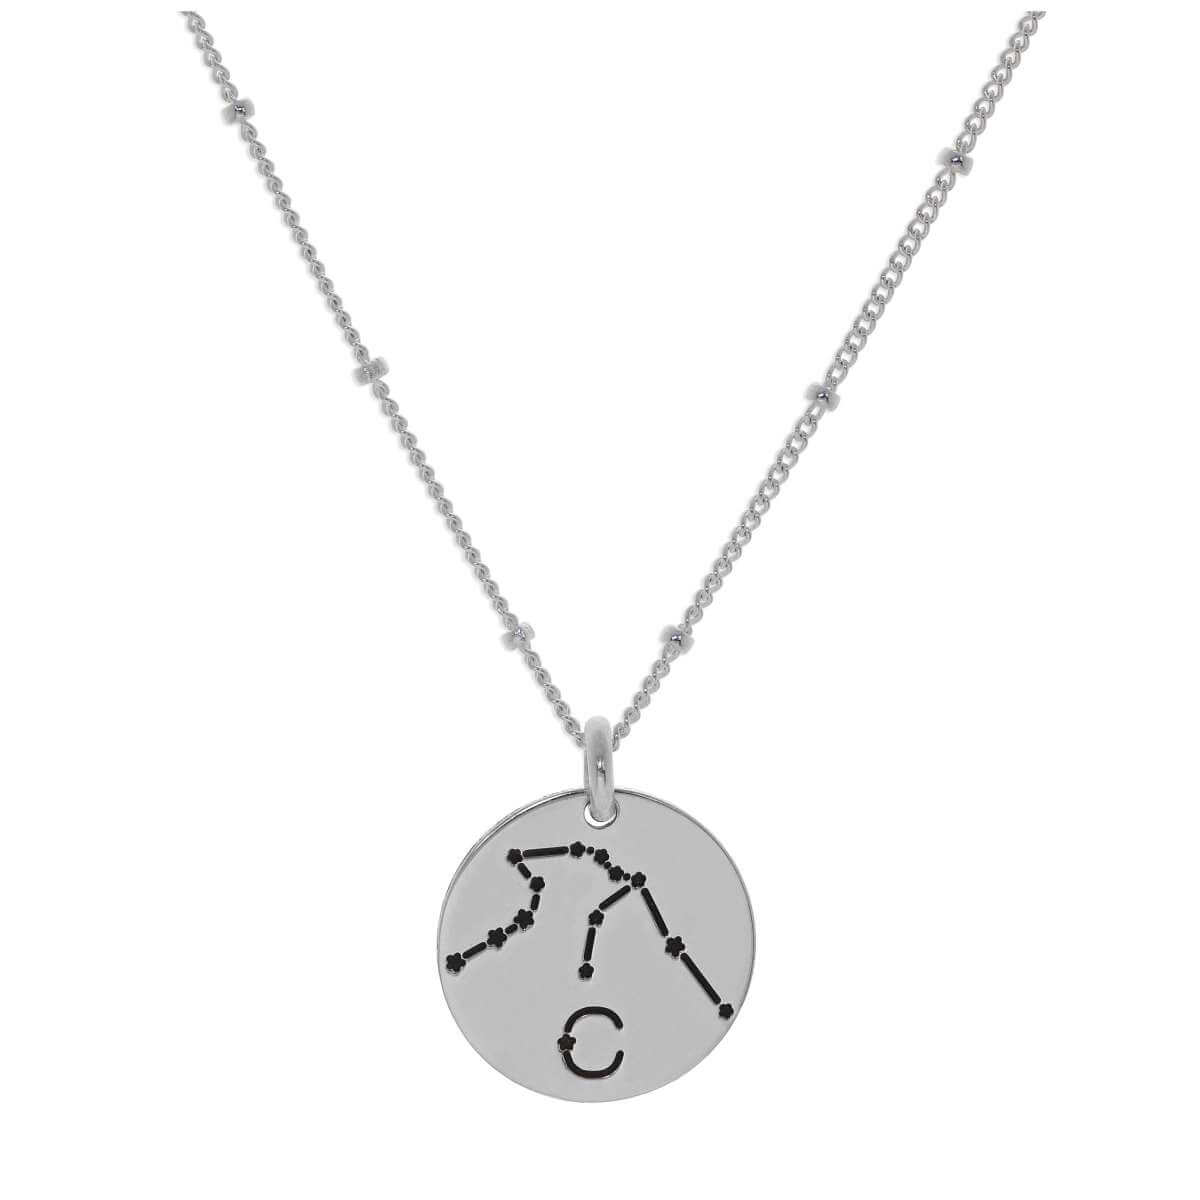 Bespoke Sterling Silver Aquarius Constellation & Initial Necklace 12-24 Inch